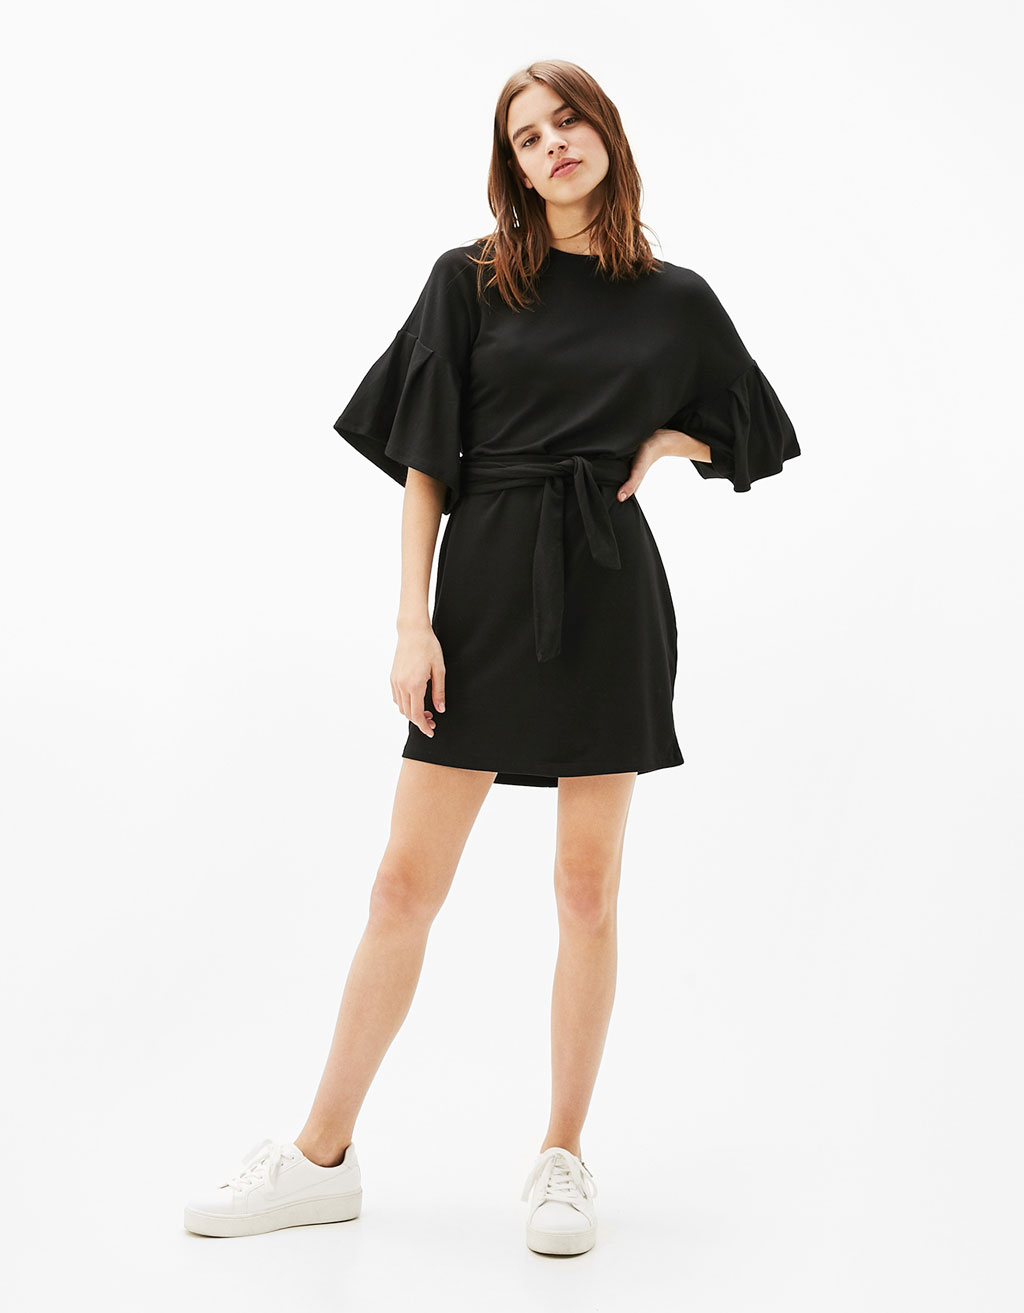 Viscose dress with puffy sleeves and belt